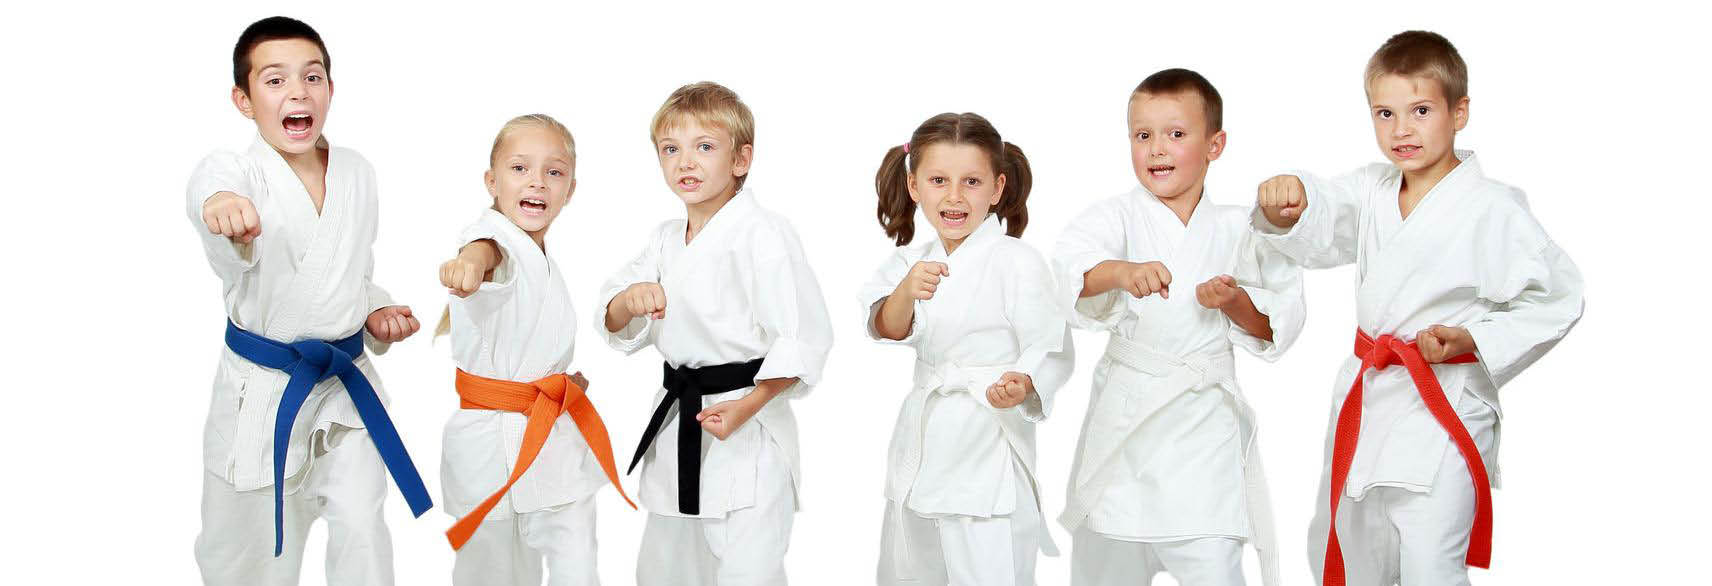 Karate Family Center Catonsville Maryland children